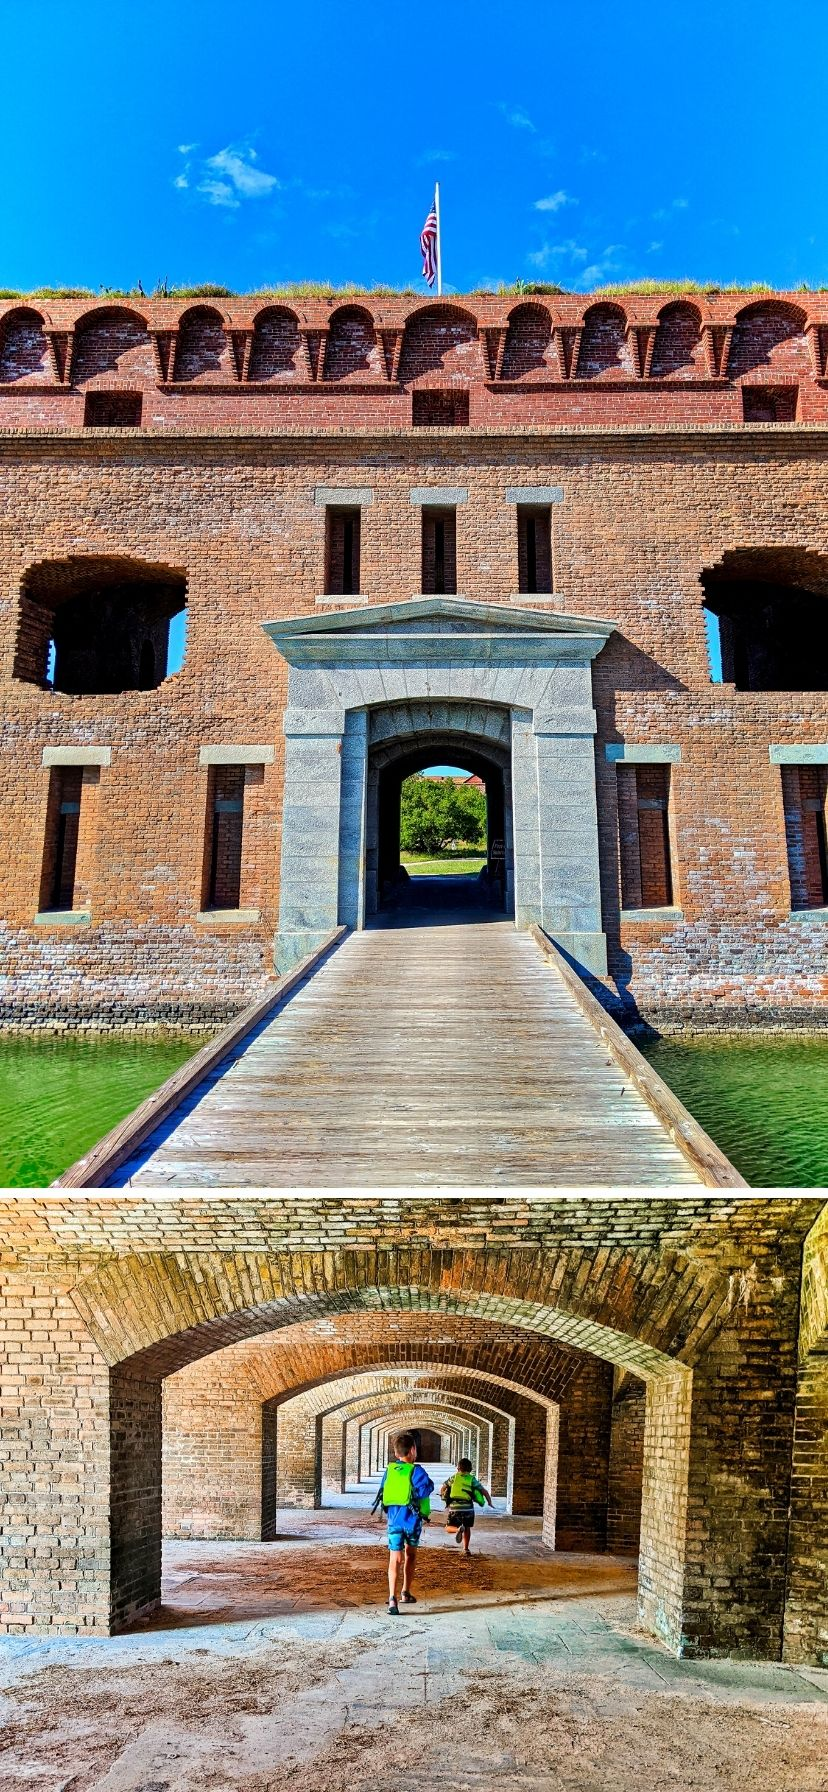 Fort Jefferson, Civil War era fortress at Dry Tortugas National Park, Florida Keys